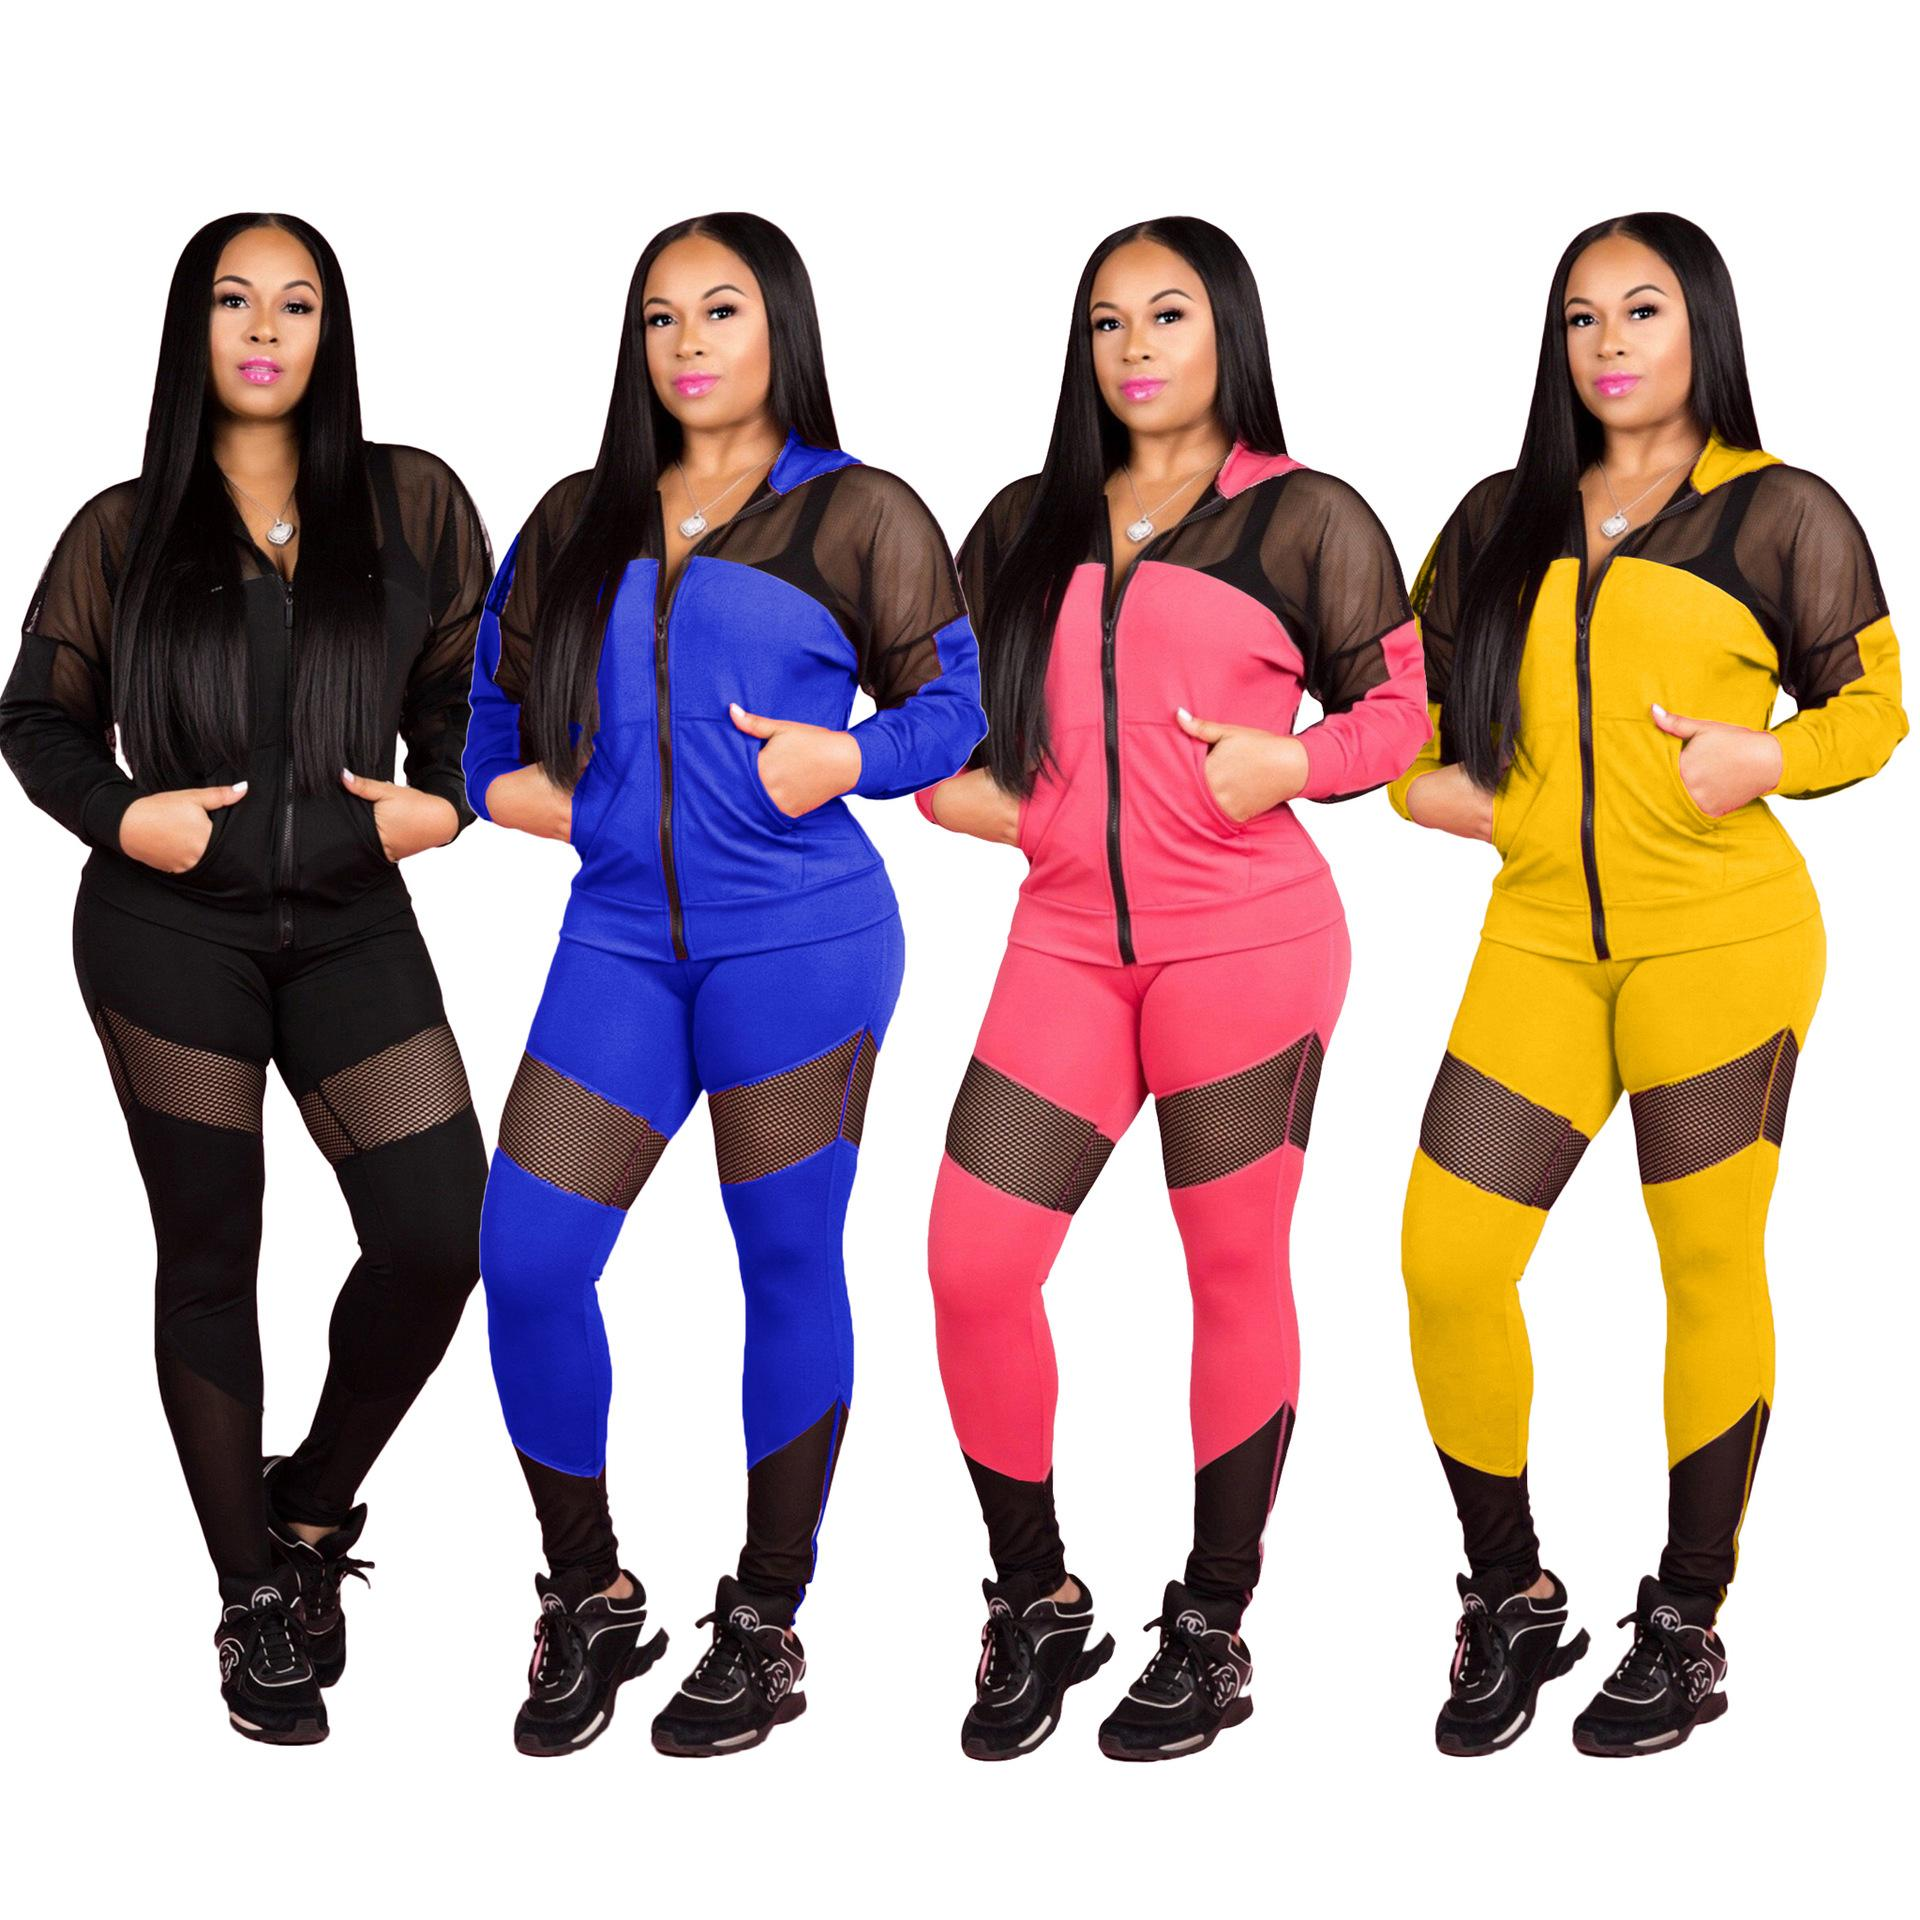 Women Tracksuits Hooded Long Sleevetwo Piece Outfits Sheer Stictch Sports Suits Zip Up Pocket Hoodie Long Pant Set Pink Blue Yellow Black